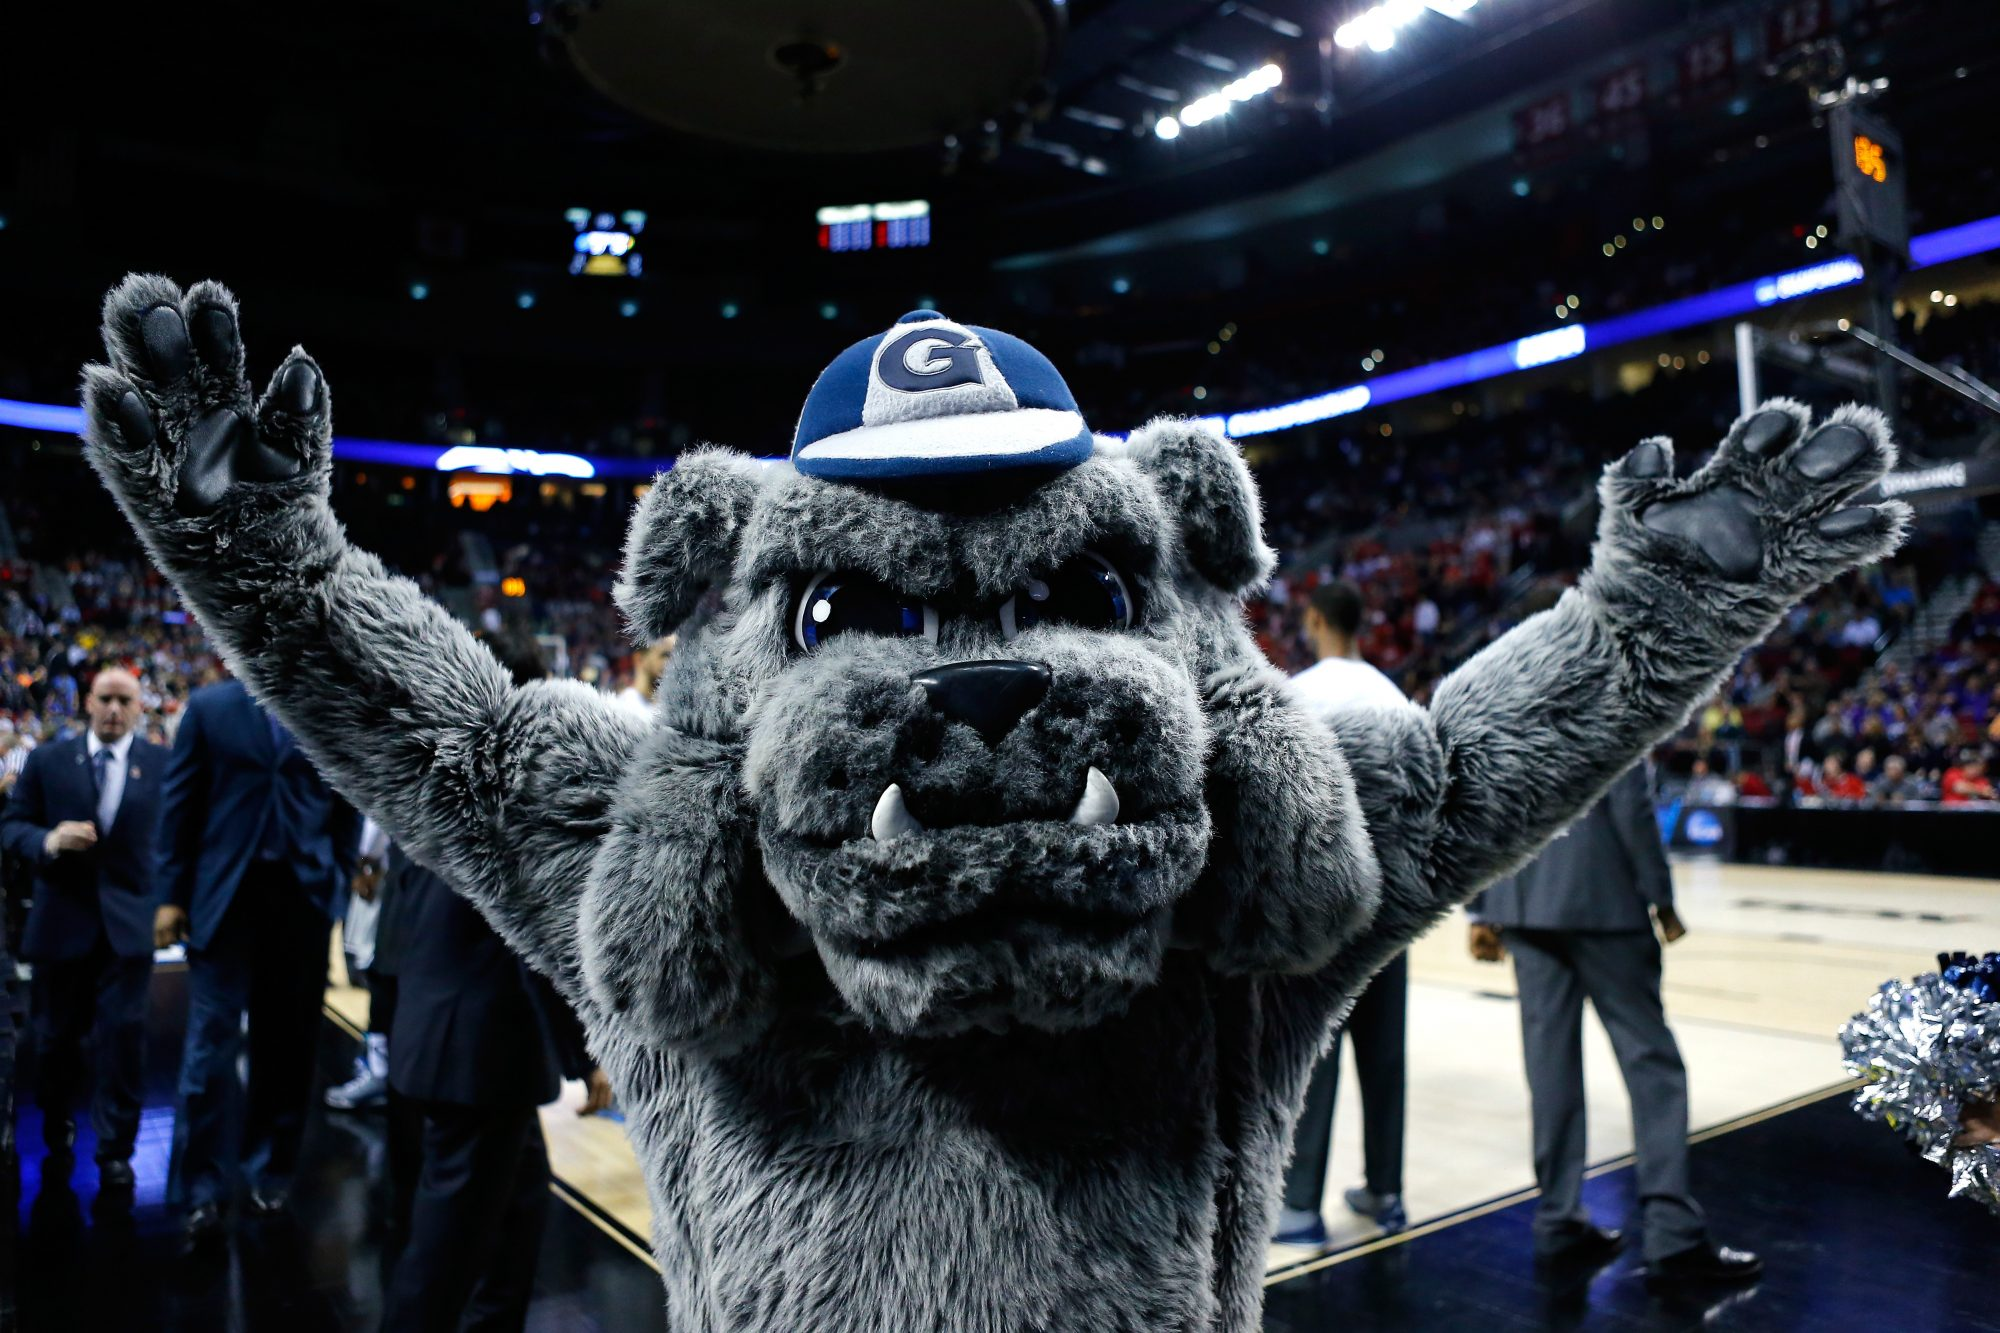 The Georgetown Hoyas mascot looks on before the game against the Eastern Washington Eagles during the second round of the 2015 NCAA Men's Basketball Tournament at Moda Center on March 19, 2015 in Portland, Oregon.